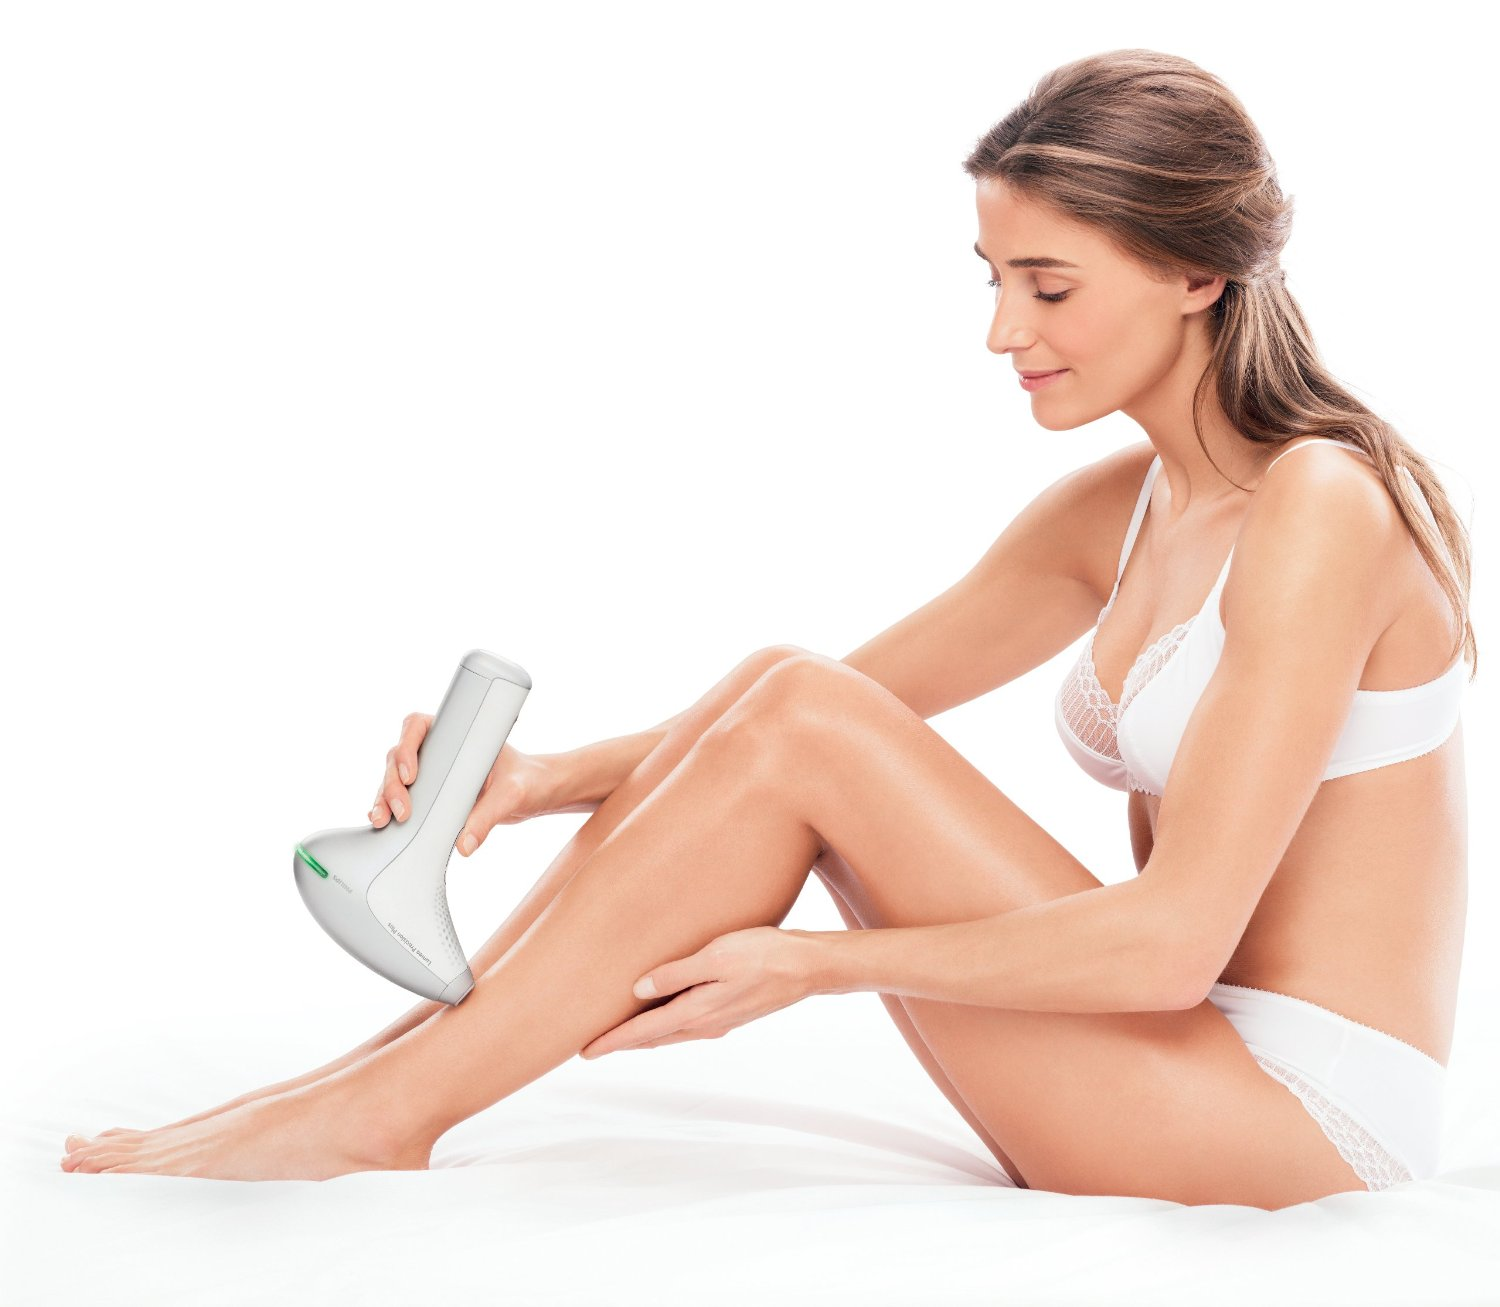 Philips Lumea Comfort Ipl Hair Removal System Review